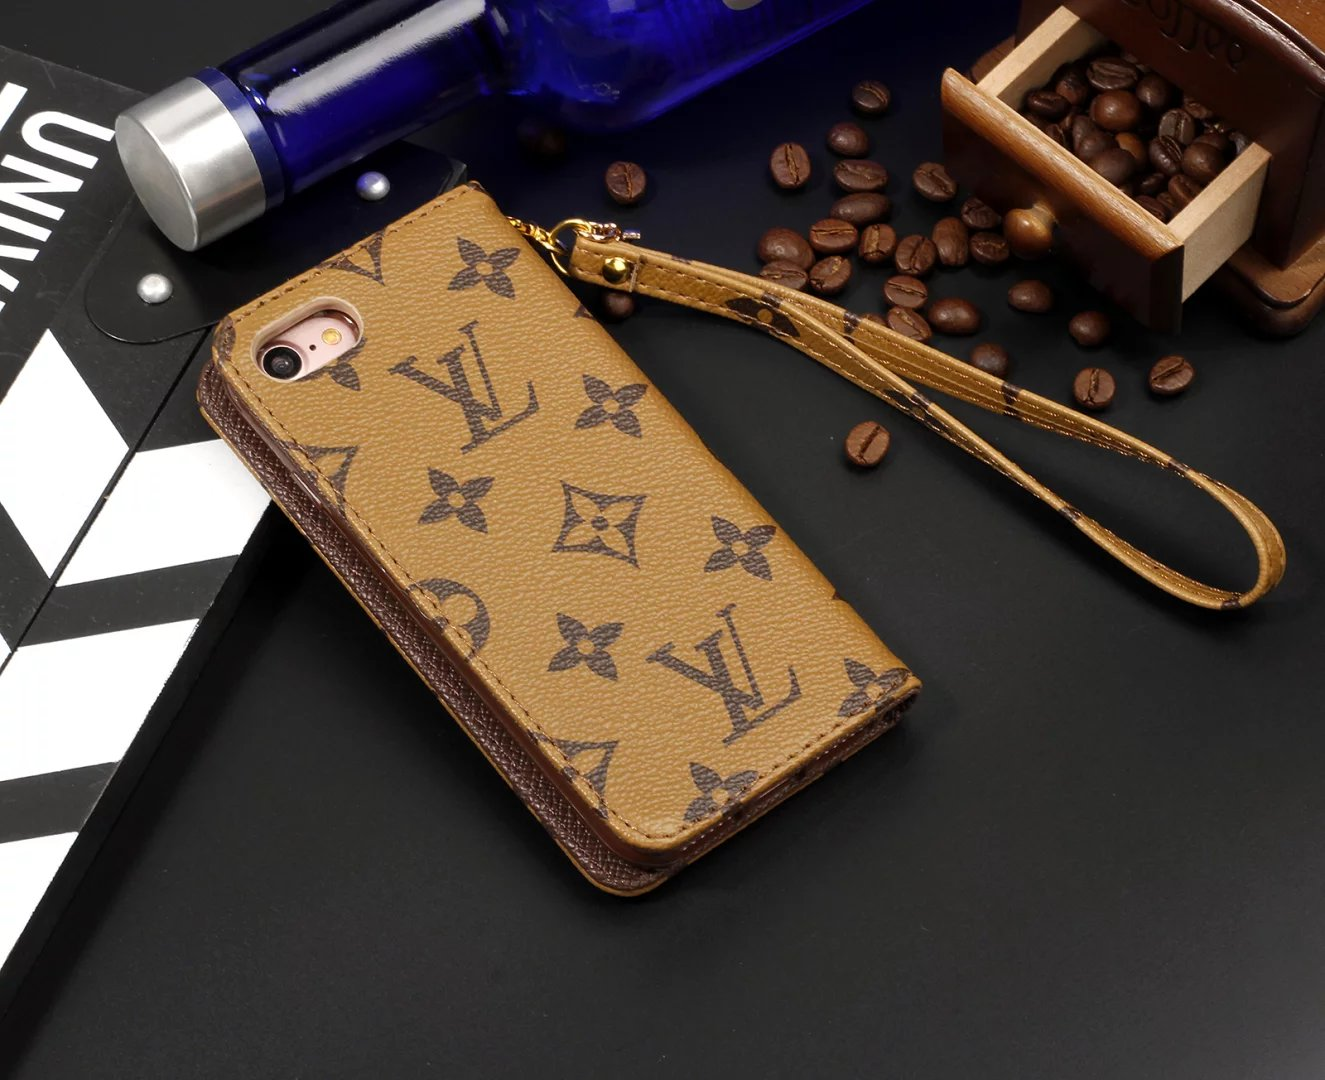 iphone hülle selber machen iphone hülle designen Louis Vuitton iphone7 hülle neuestes i phone iphone 7 cover leder cover für iphone 7 ipad hüllen designer iphone 7 angebot apple handy 6